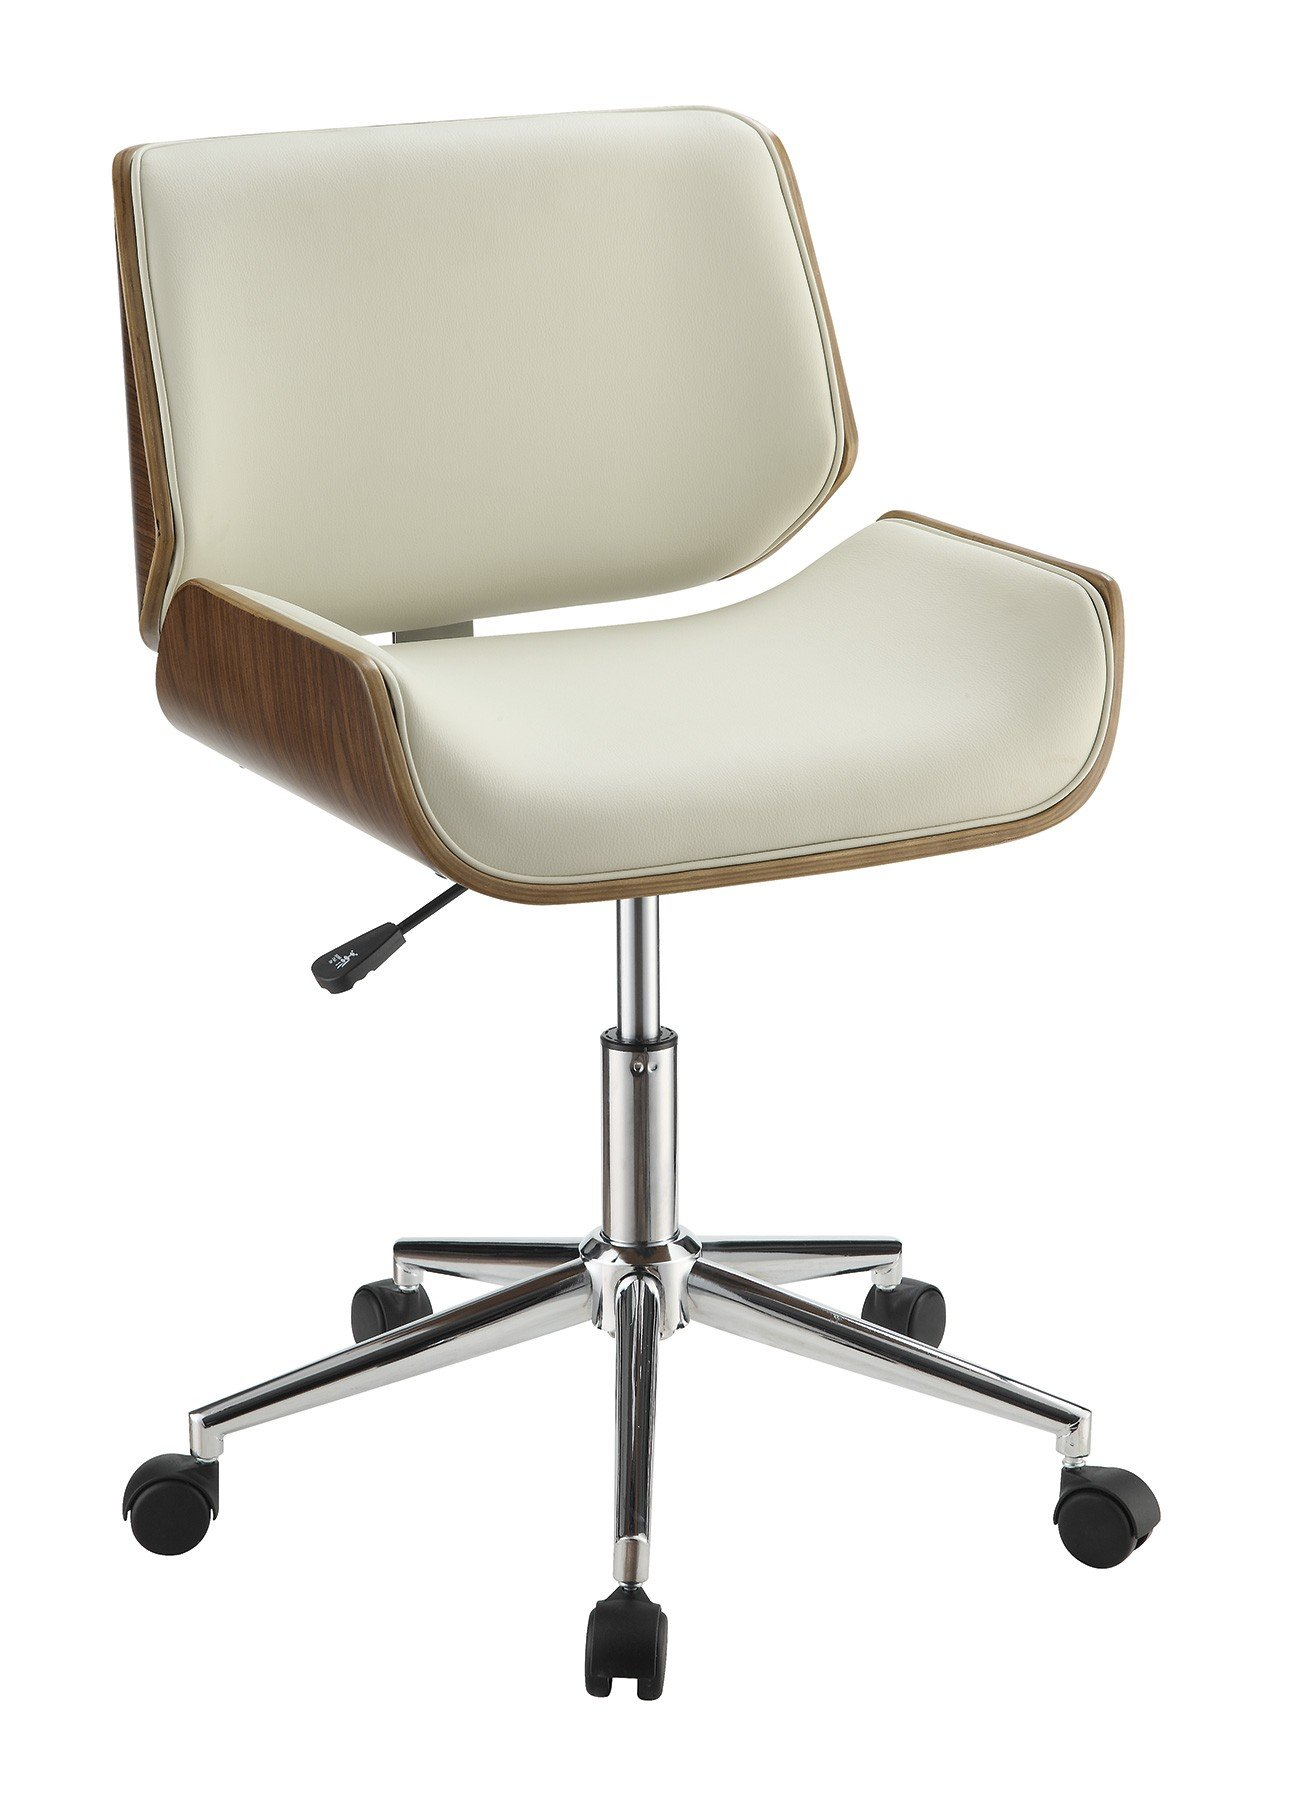 Coaster Home Furnishings 800613 Leatherette Office Chair, NULL, Ecru